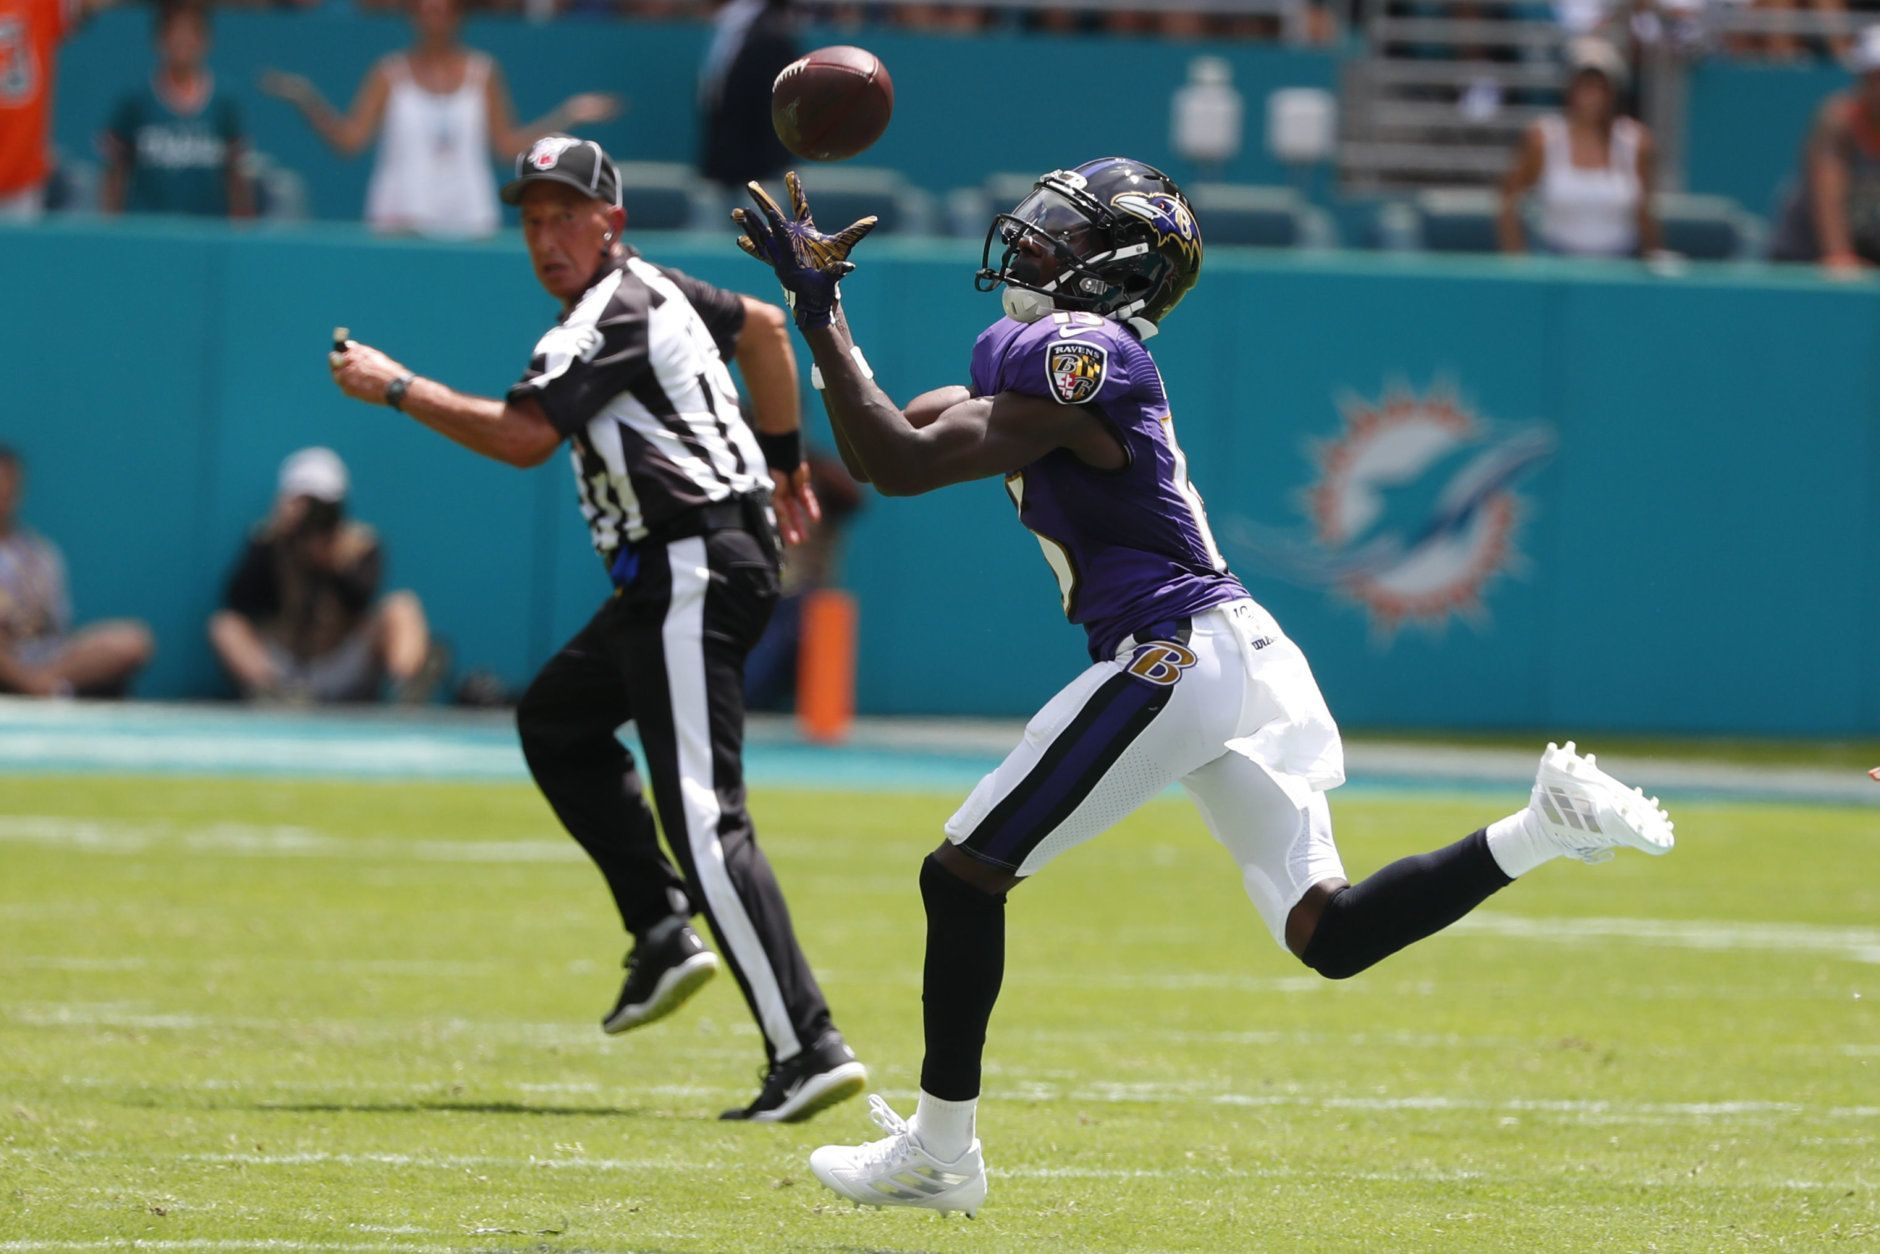 "<p><b><i>Ravens 59</i></b><br /> <b><i>Dolphins 10</i></b></p> <p>Marquise Brown's first two NFL catches were touchdowns totaling 130 yards, making him the first player in NFL history to score multiple 40-yard touchdowns in his career debut. Veterans Mark Ingram and Earl Thomas also had great debuts for Baltimore, and Lamar Jackson rushed for only six yards but delivered on <a href=""https://www.baltimoreravens.com/news/lamar-jackson-can-t-wait-to-put-on-a-show-with-new-offense"">his promise to put on a show</a>, notching a perfect passer rating and matching a franchise record with five TDs in his hometown. Either this really is <a href=""https://wtop.com/nfl/2019/09/2019-afc-north-preview/"">a revolutionary offense</a>, or <a href=""https://profootballtalk.nbcsports.com/2019/09/08/early-mutiny-in-miami/"">Miami is right to mutiny</a>.</p>"